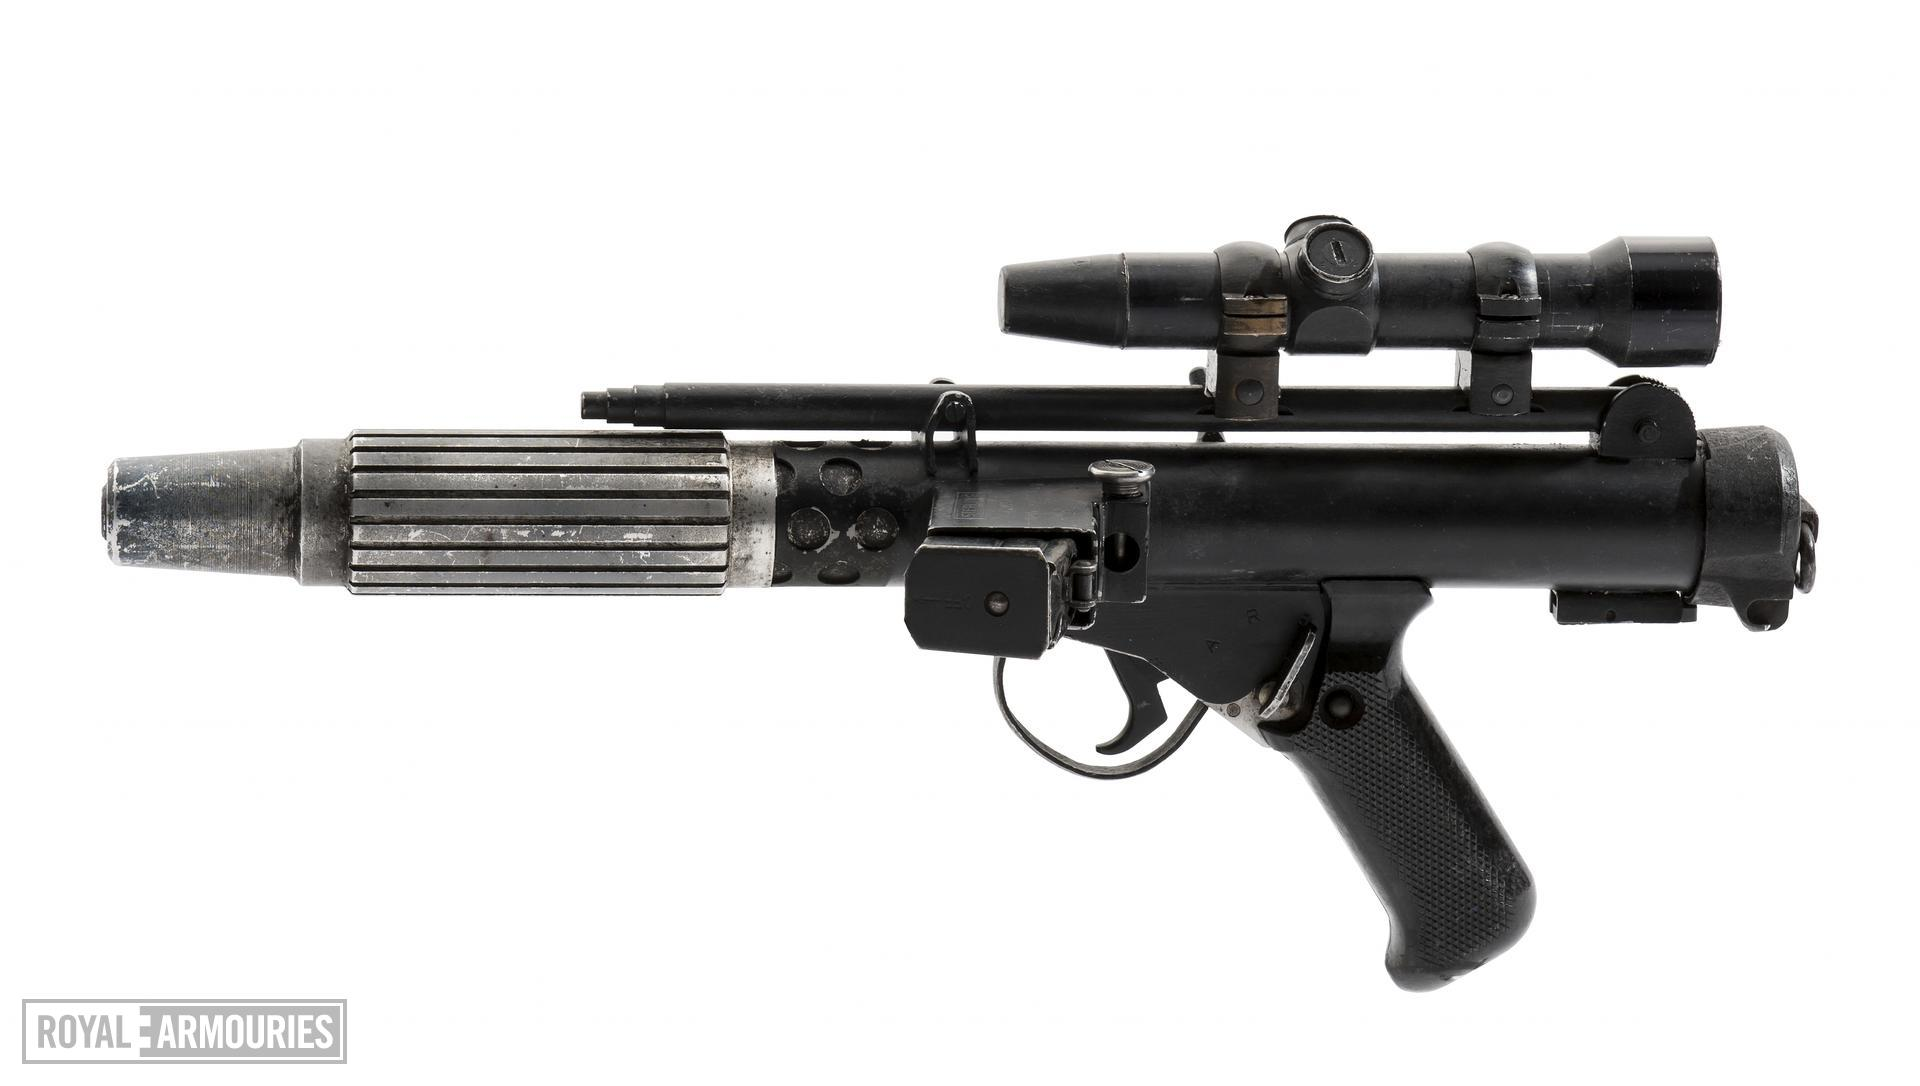 Rebel Blaster from the movie Star Wars